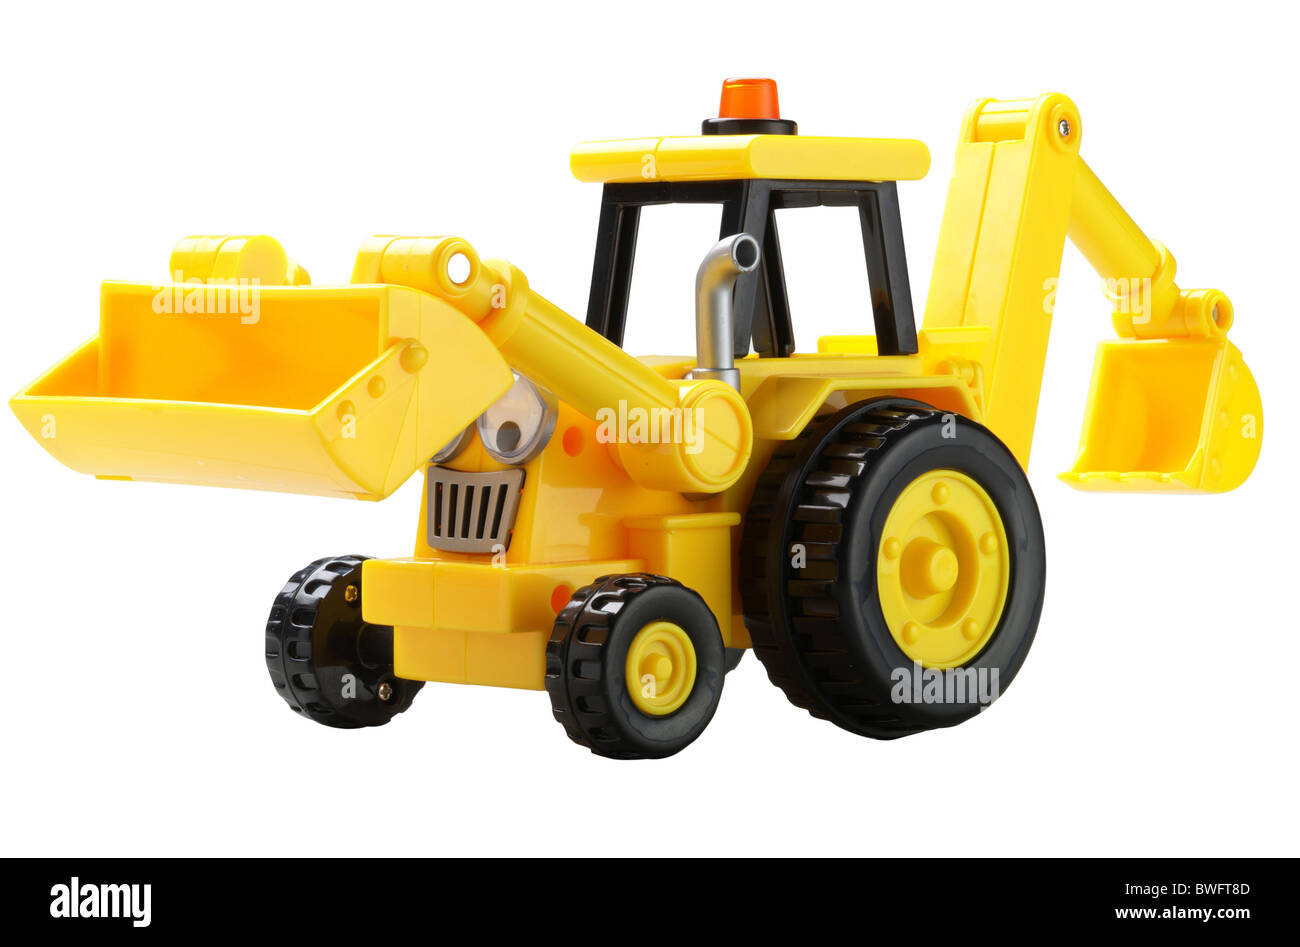 Digger Toy Toy Digger Stock Photo 32925101 Alamy